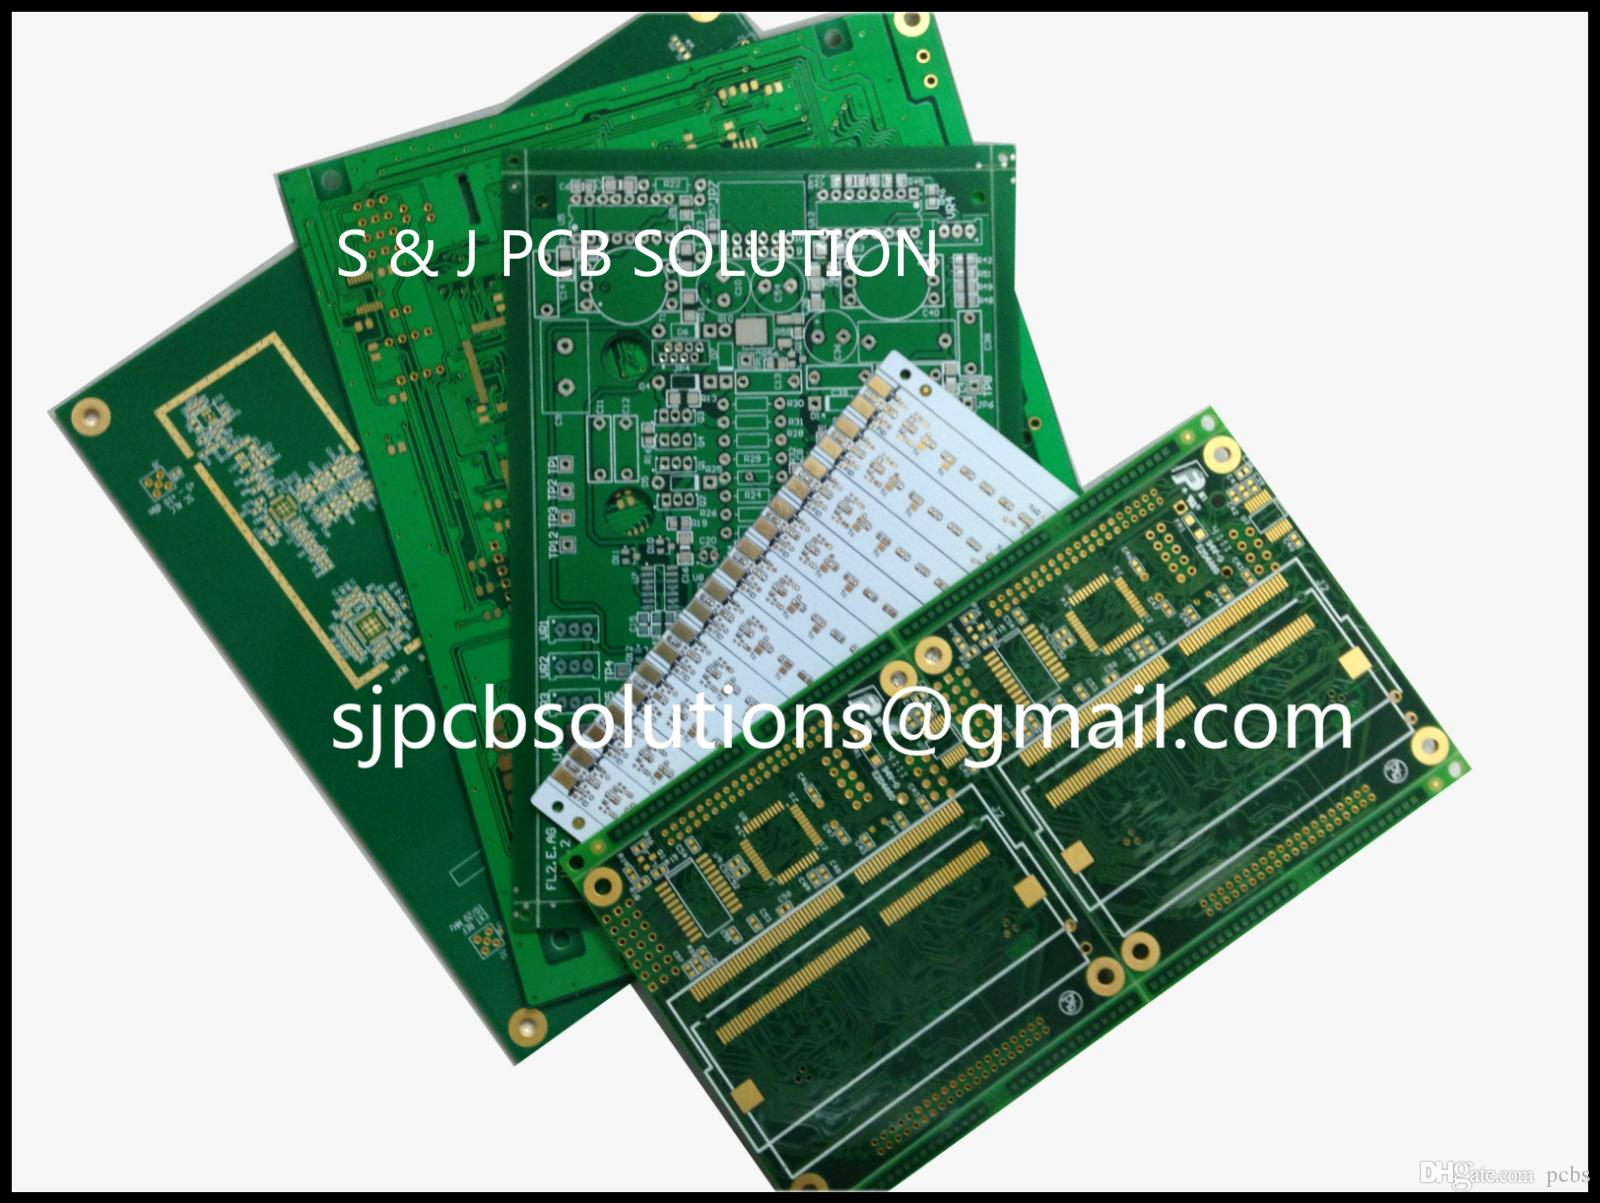 Fr4 Pcb Printed Circuit Board 7x9 Cm For Prototype Led Diy Project Ebay High Quality Professional Manufacturer From China Online With Piece On Store